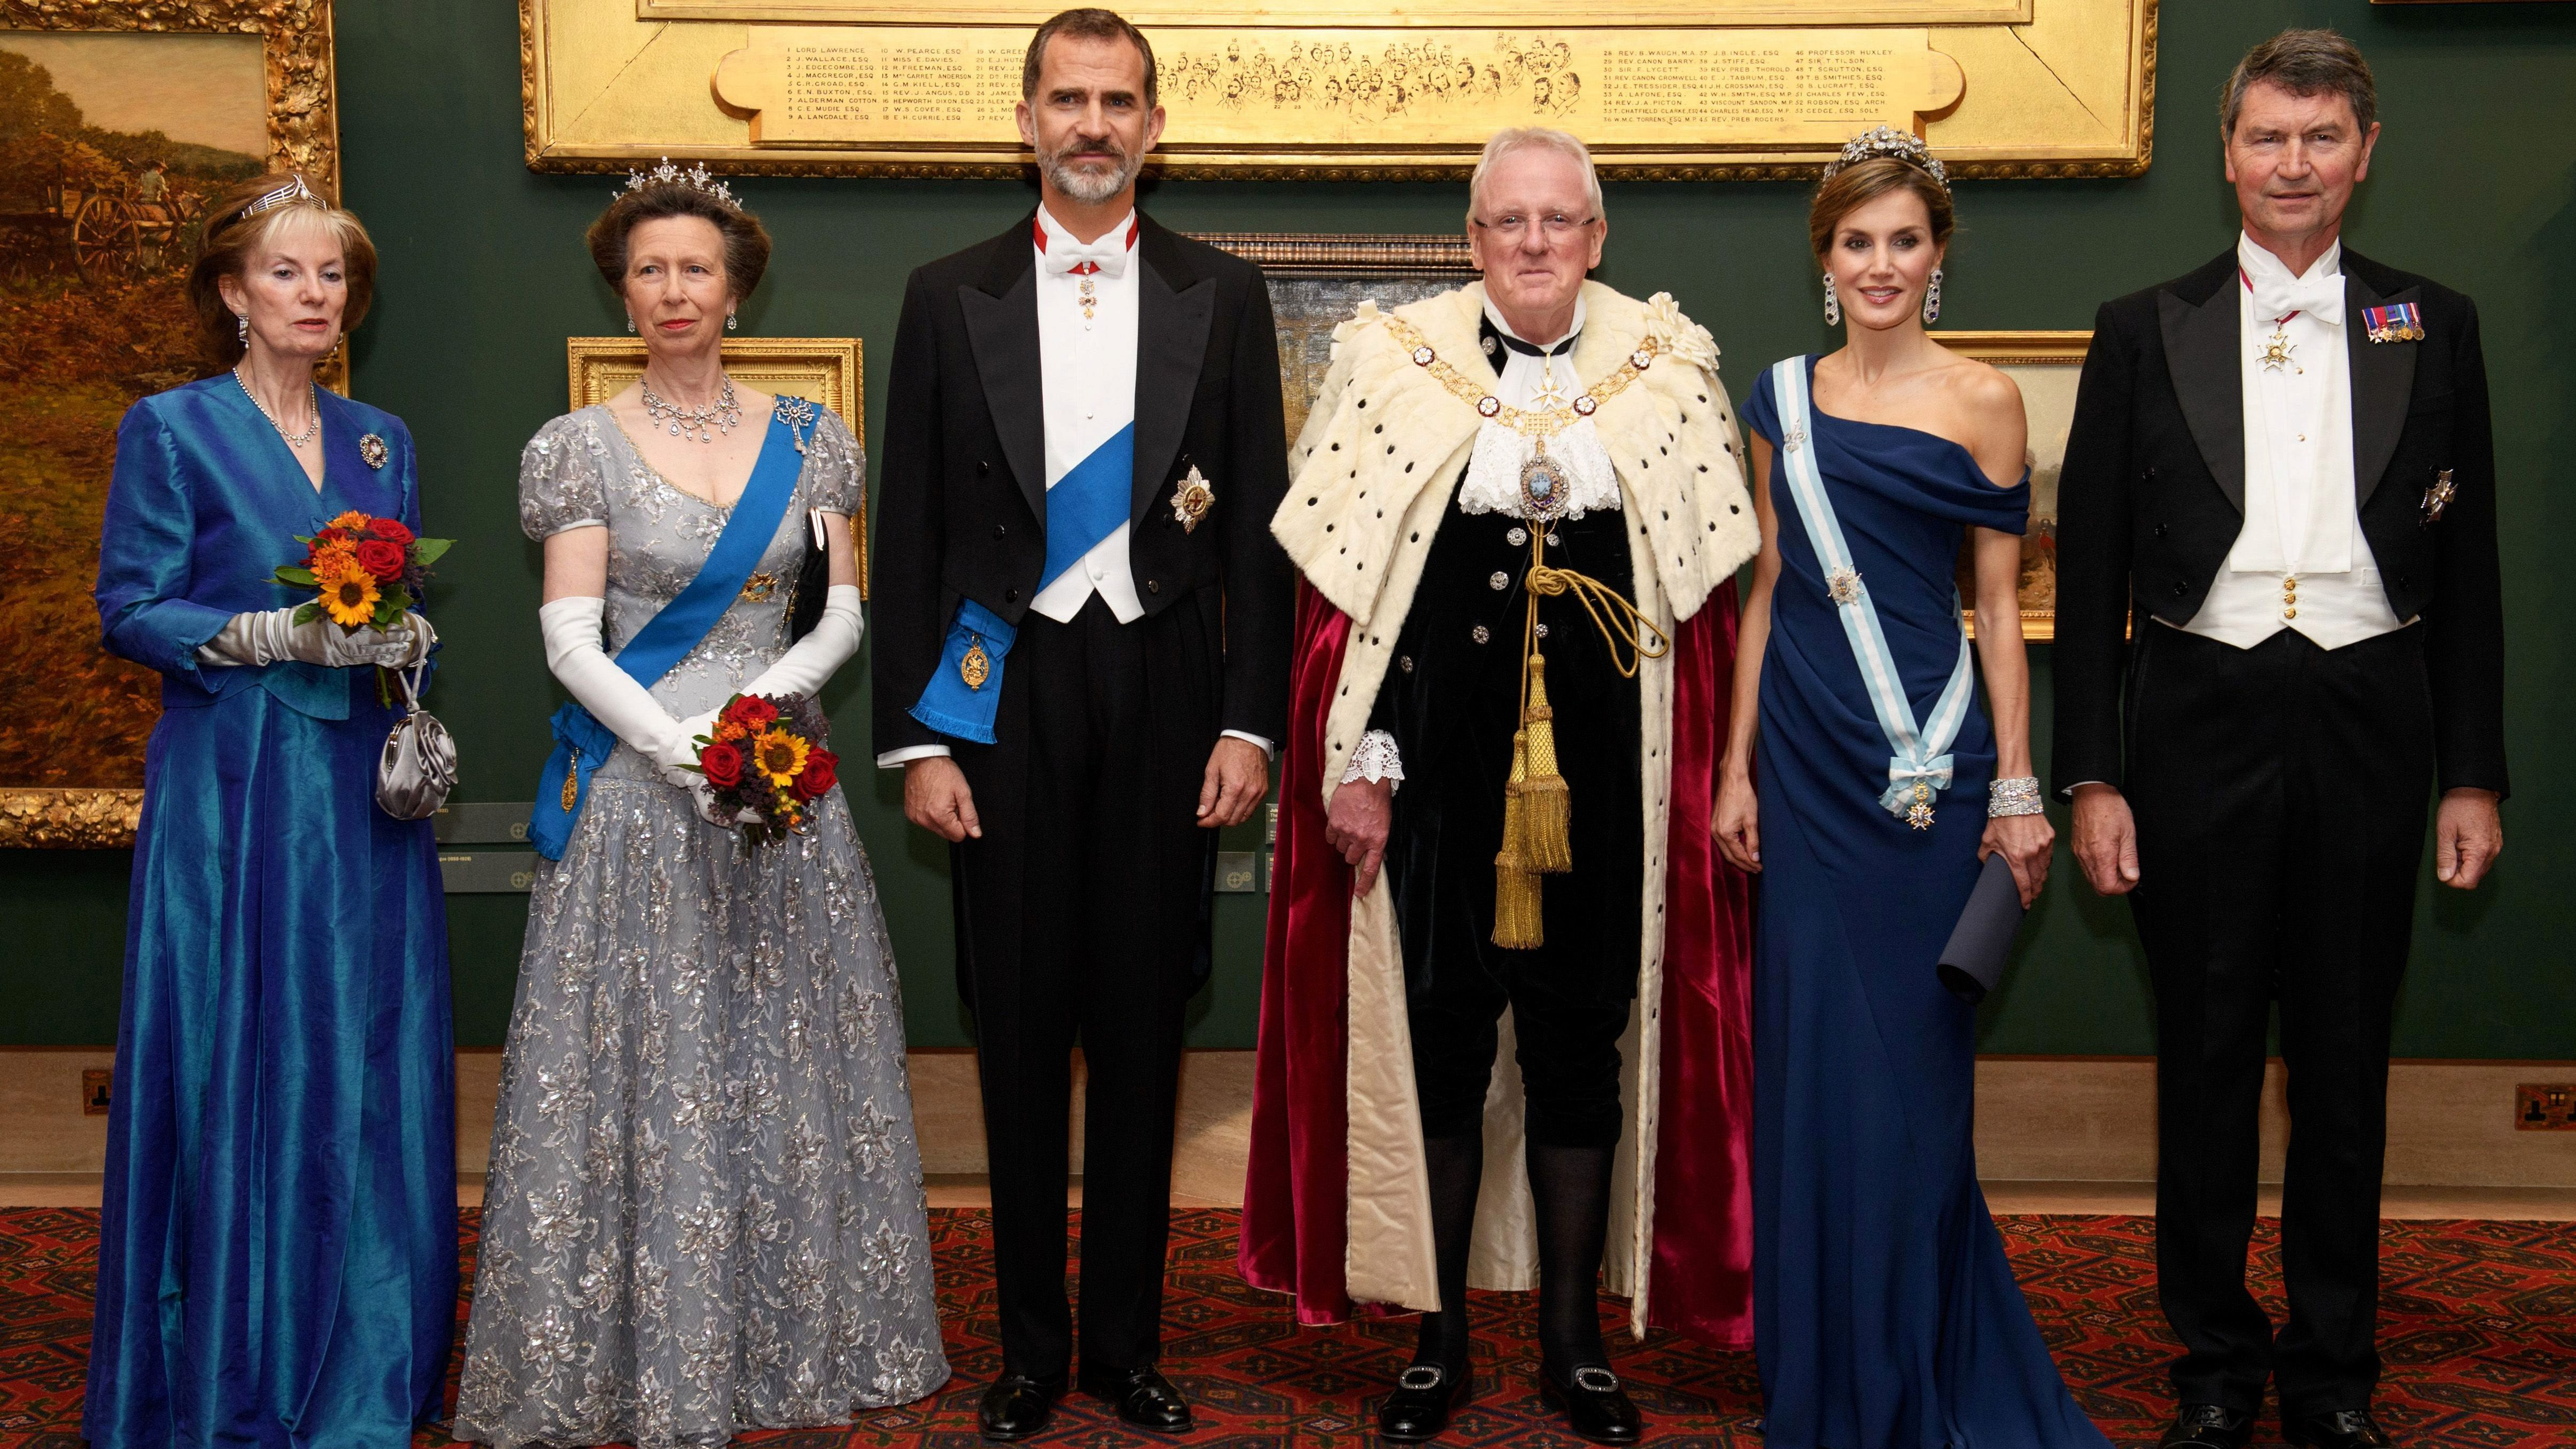 Royal families: The countries that most want to abolish the